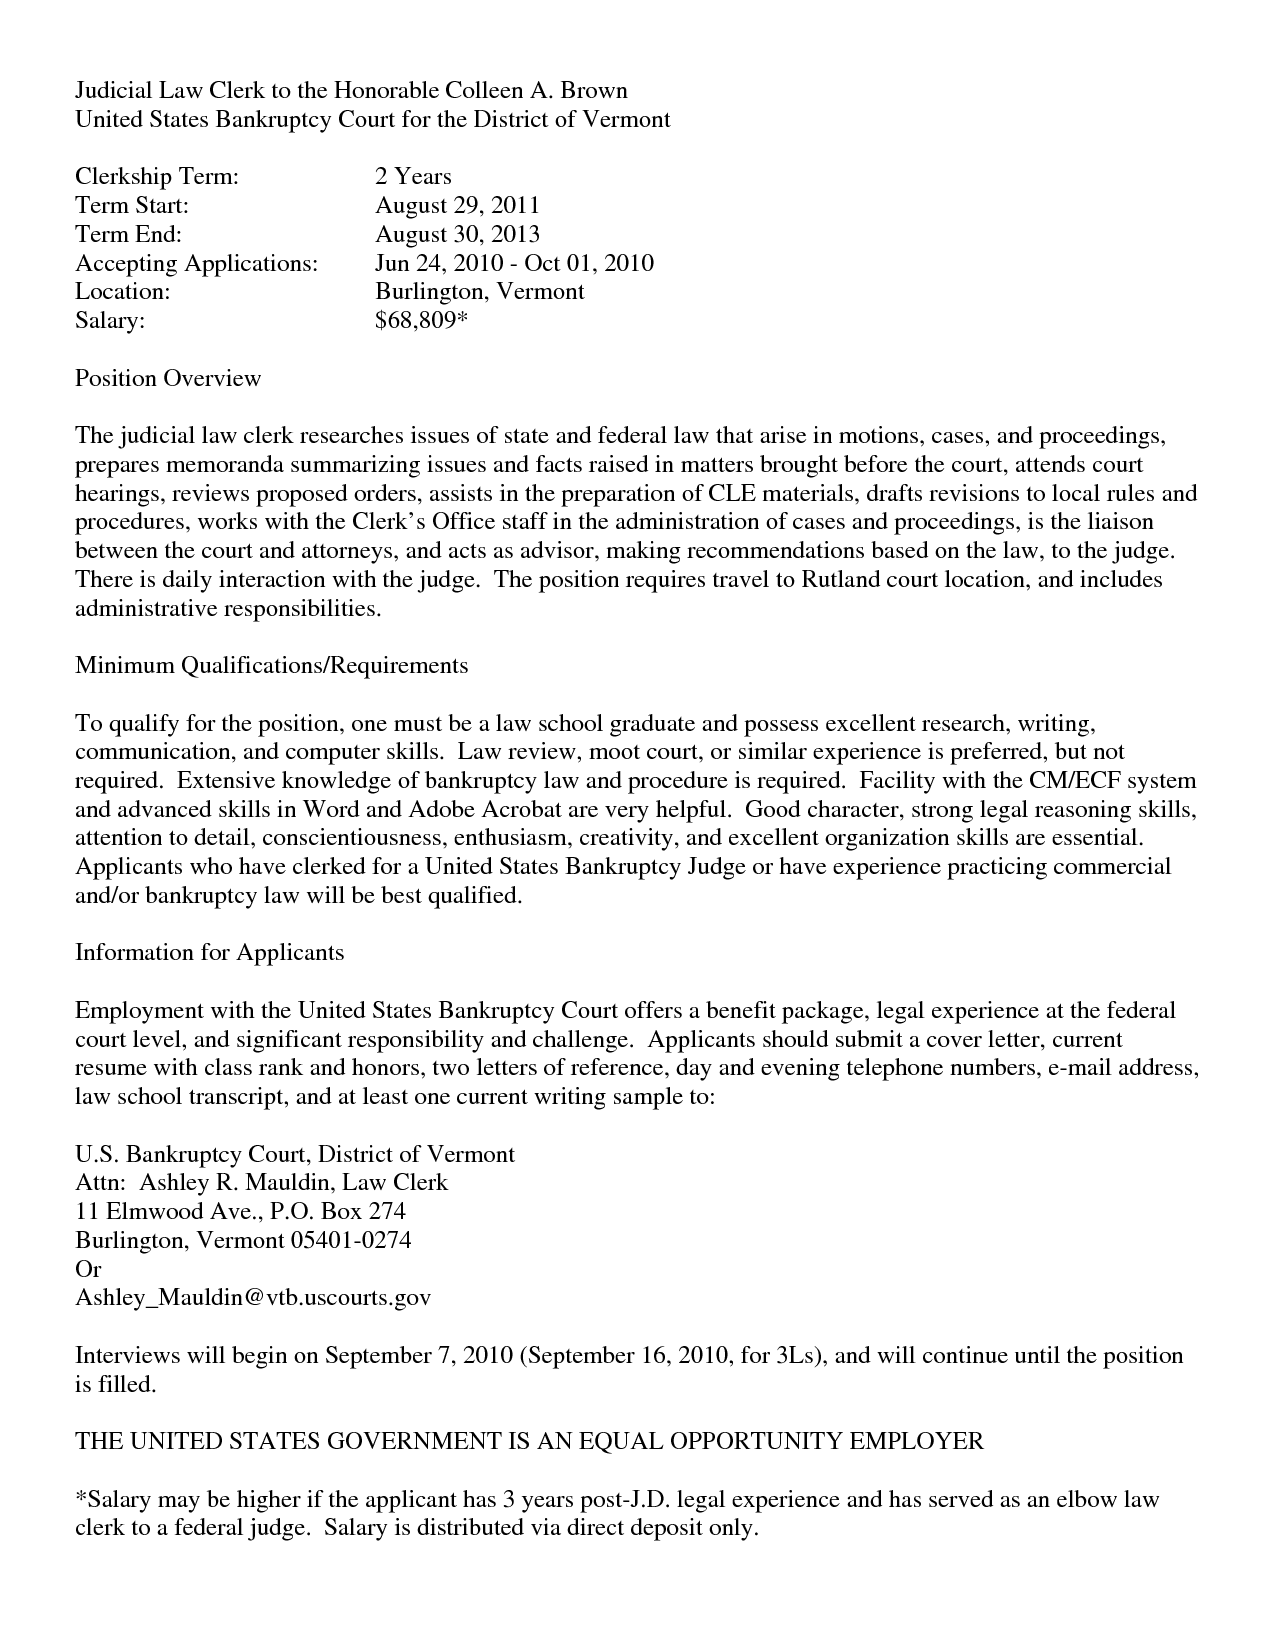 Recommendation Letter Sample For Job ApplicationReference Letter – Example Personal Reference Letter